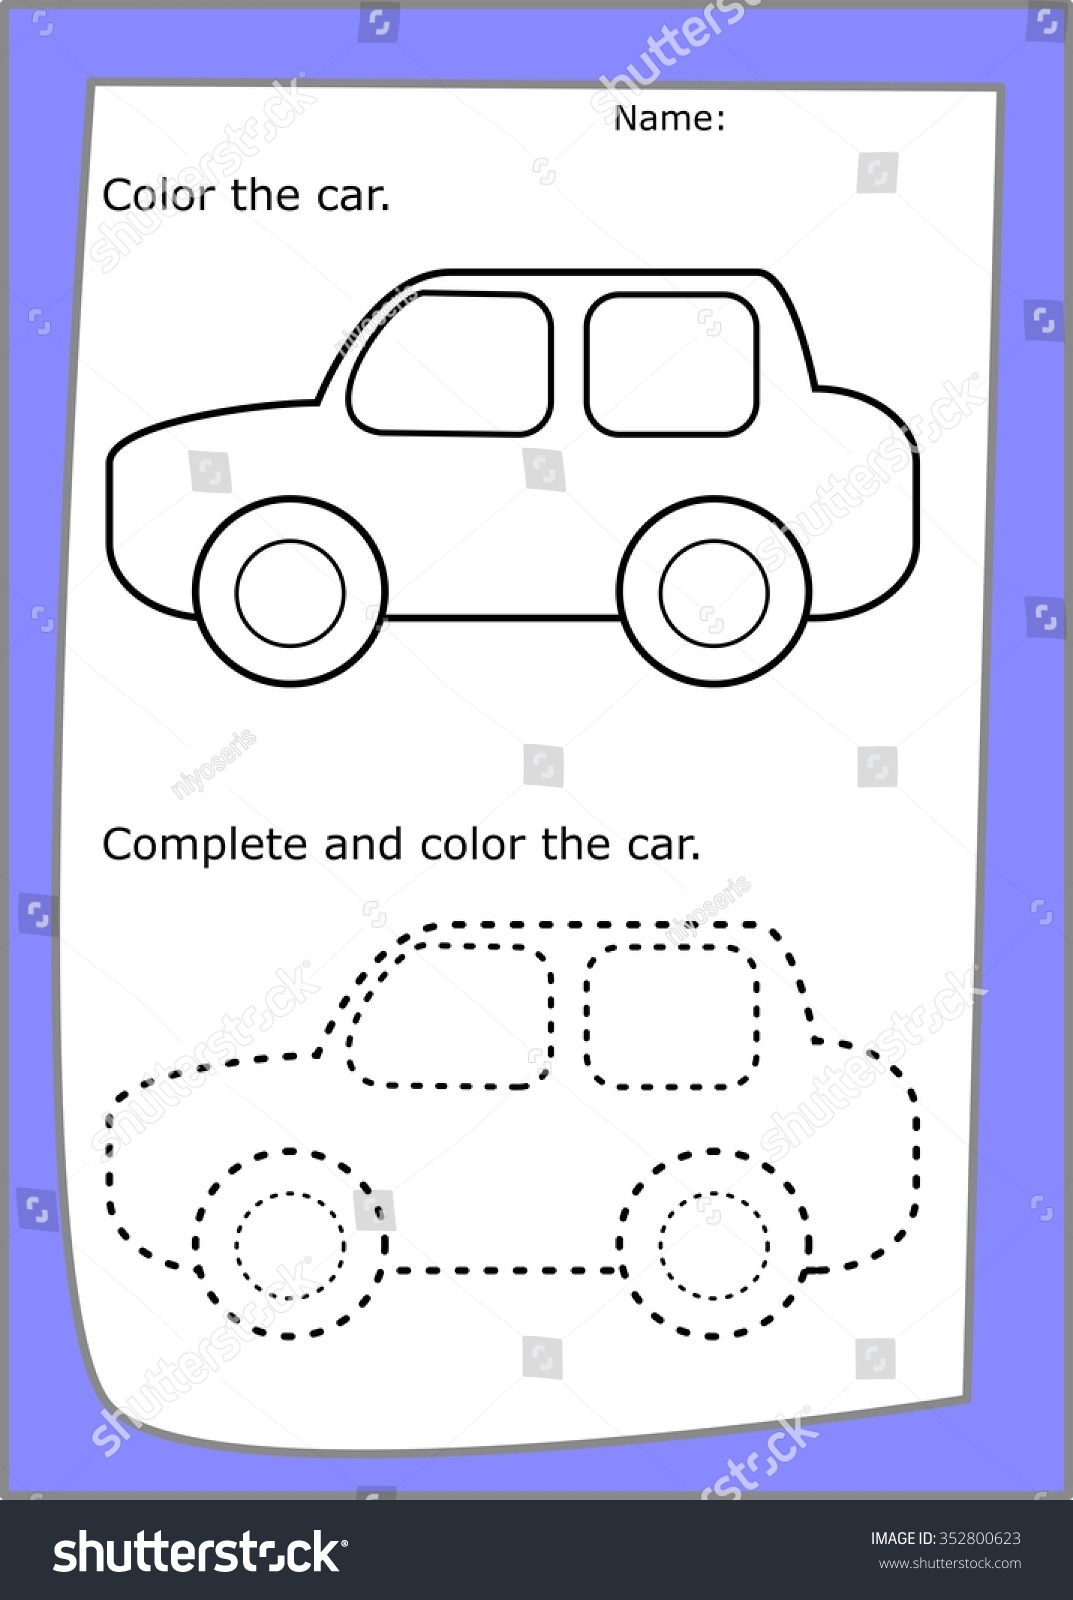 Car Coloring Worksheet Dotted Lines Stock Illustration